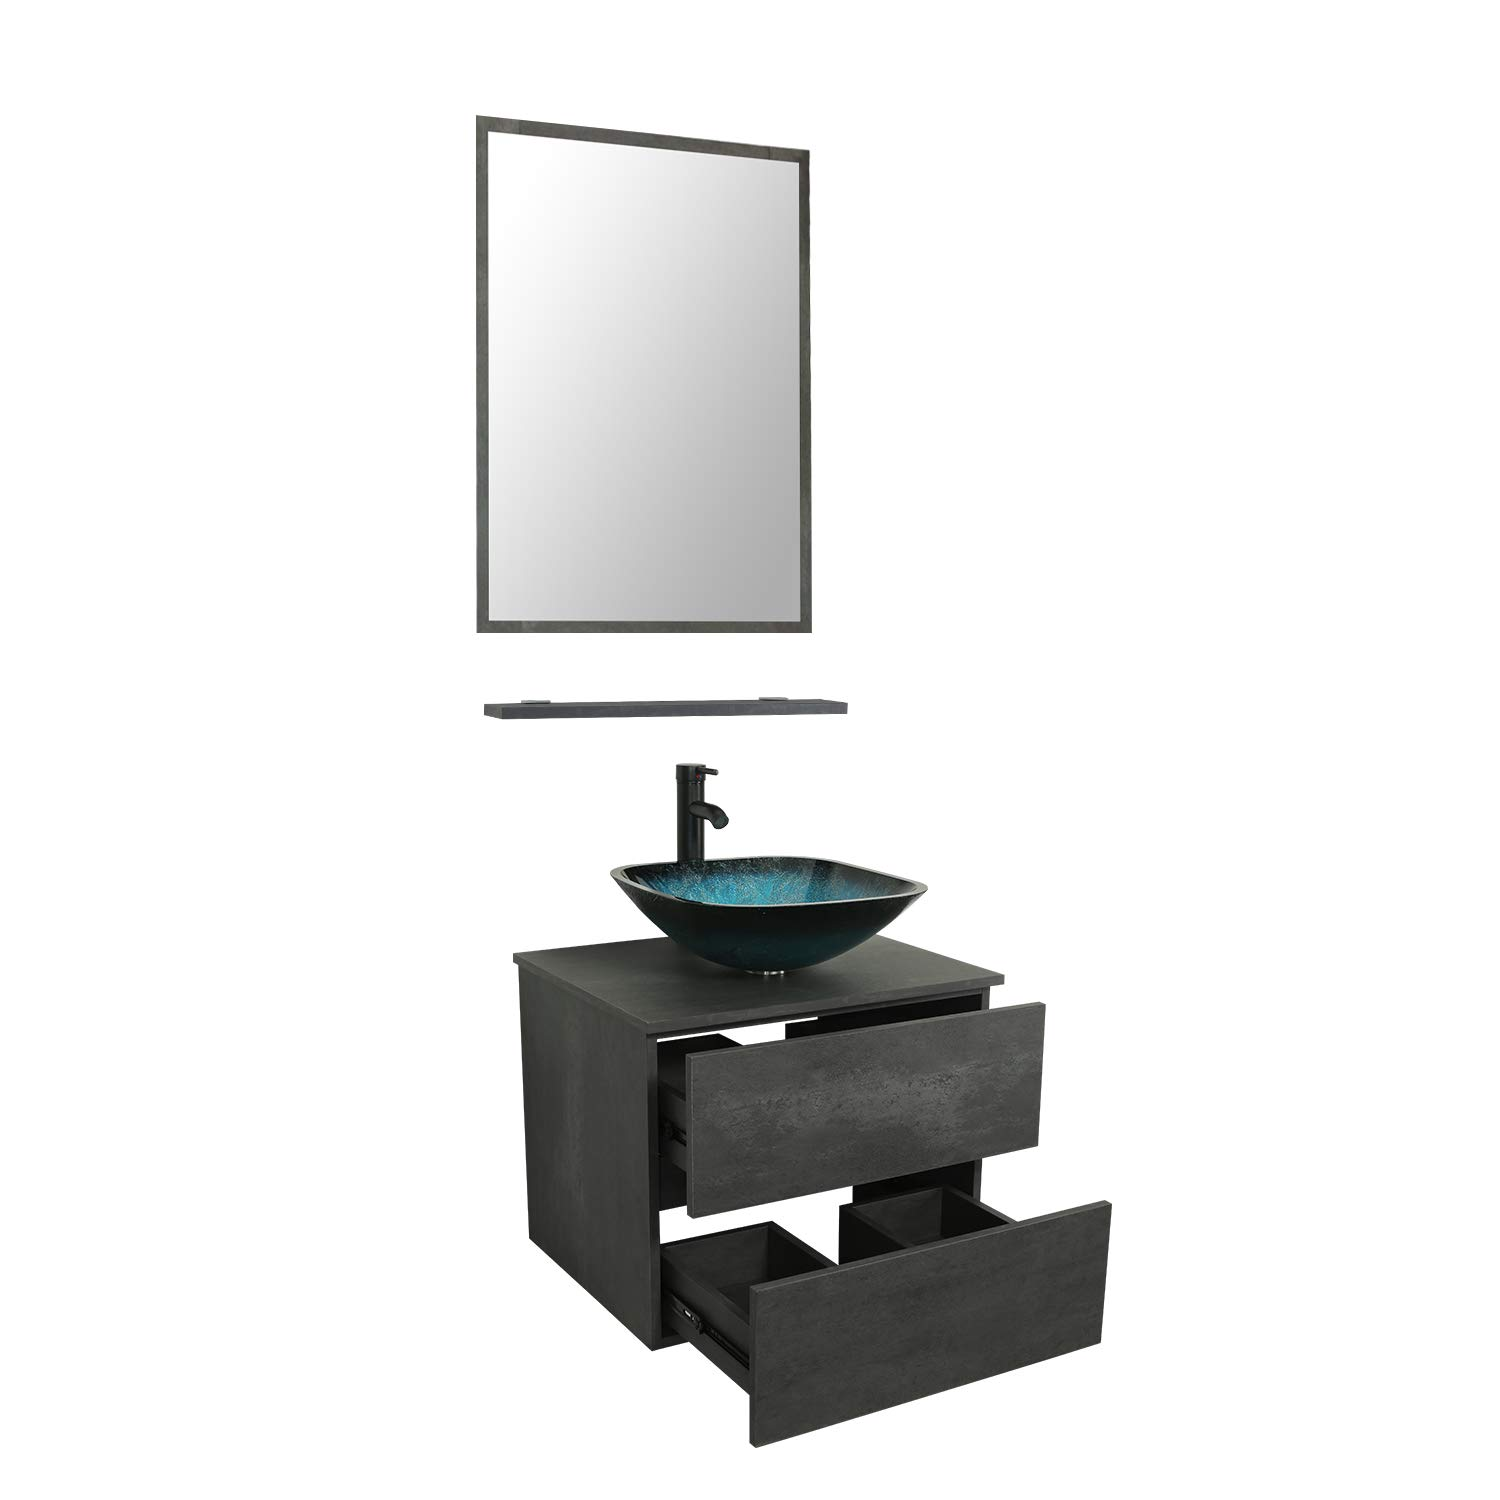 Turquoise Square Tempered Glass Vessel Sink Top W Orb Faucet Pop Up Drain Mirror Inc 24 Wall Mounted Bathroom Vanity And Sink Combo Concrete Grey Color Vanity Set With 2 Drawers Tools Home Improvement Bathroom Vanities